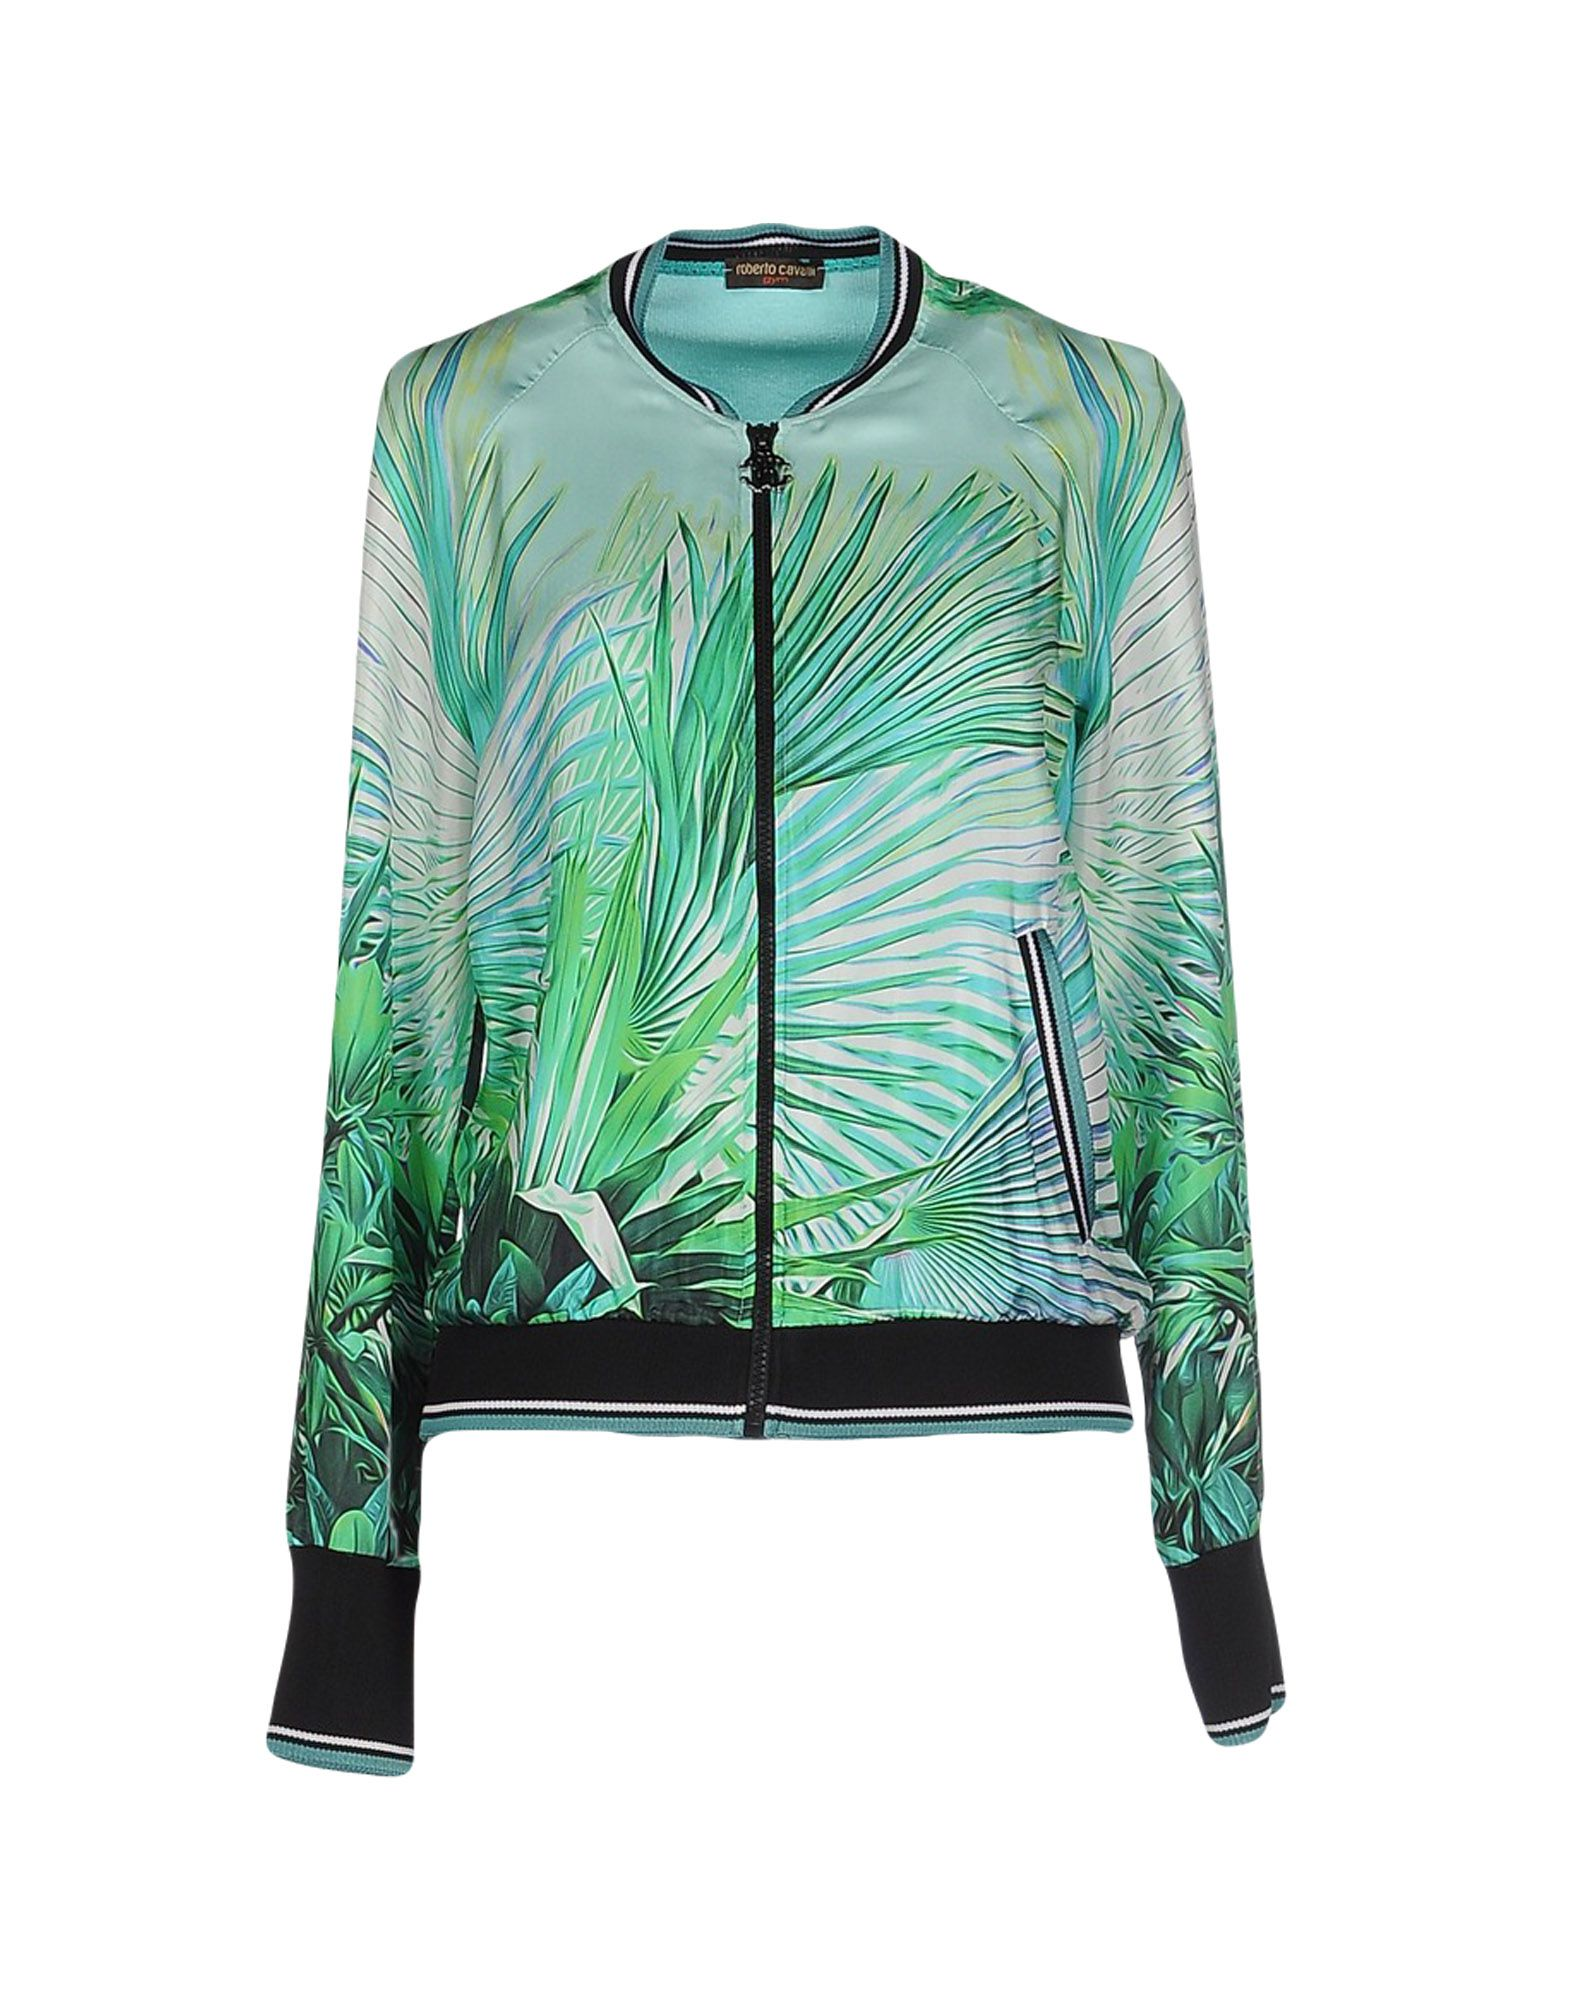 ROBERTO CAVALLI GYM Jacket in Turquoise